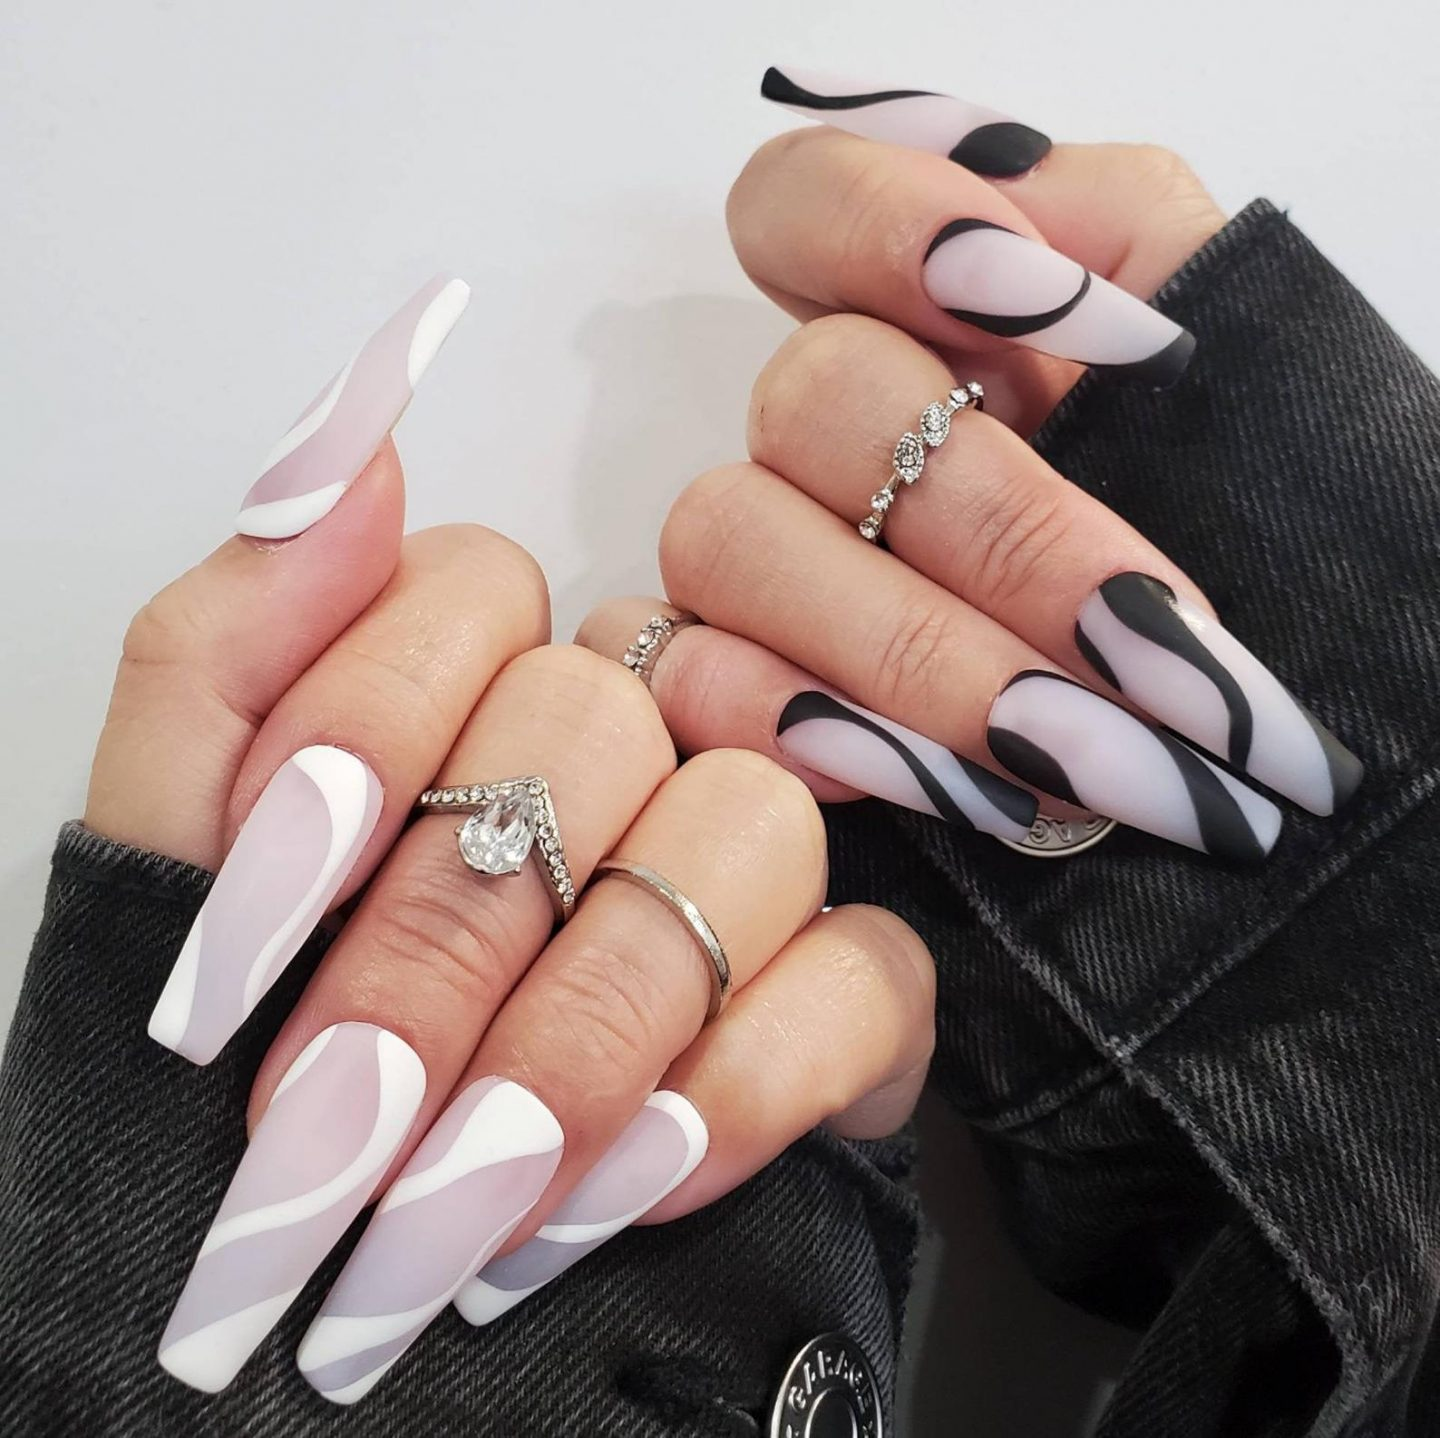 Cute black and white abstract nail designs